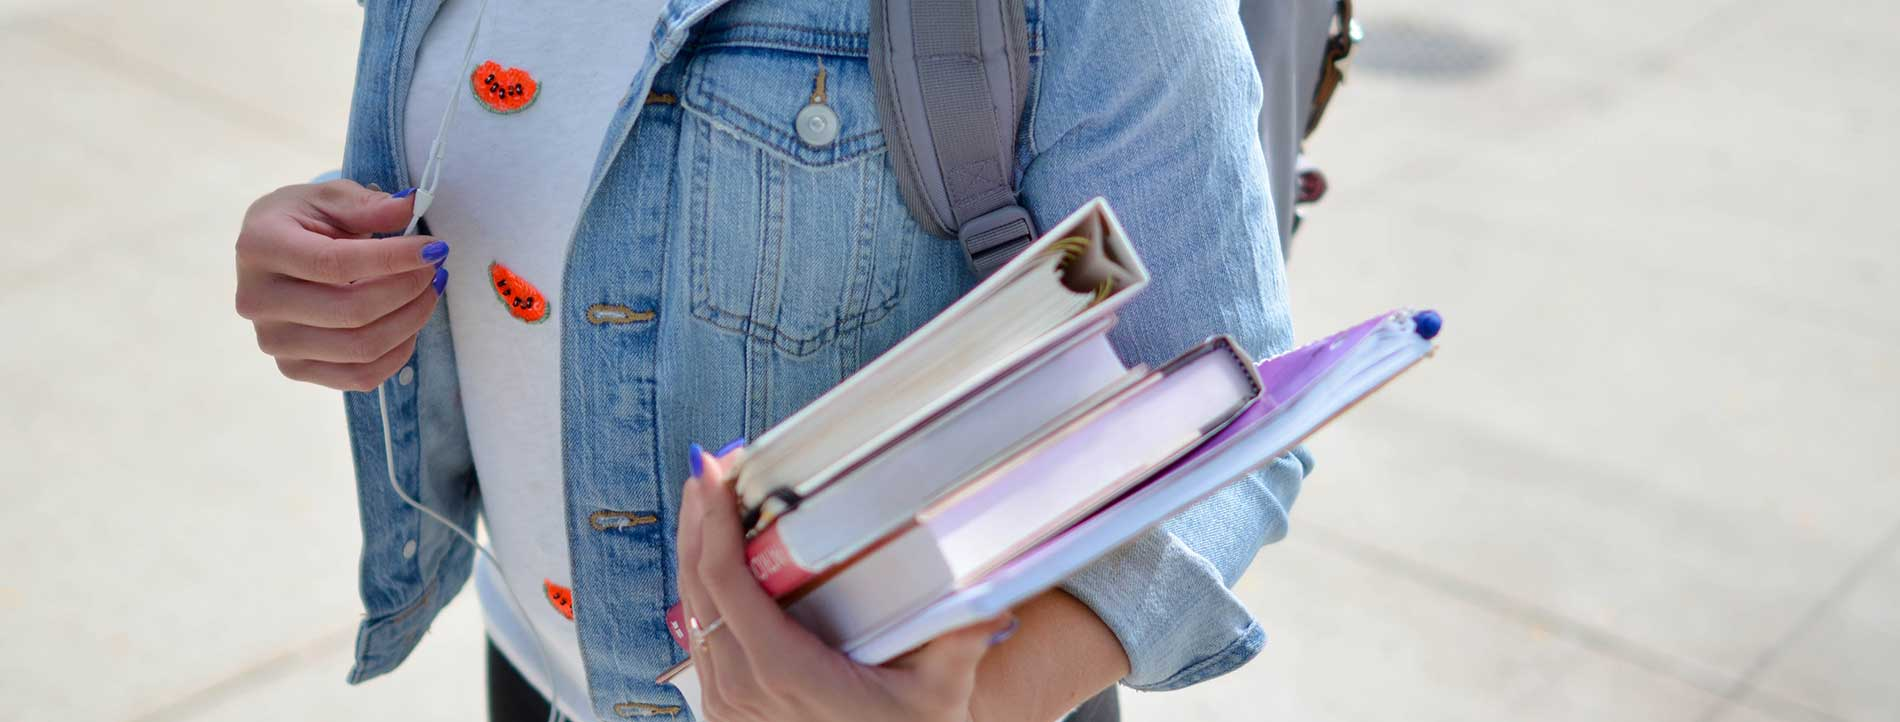 Girl with a white shirt and denim jacket, wearing a backpack and carrying a pile of books.